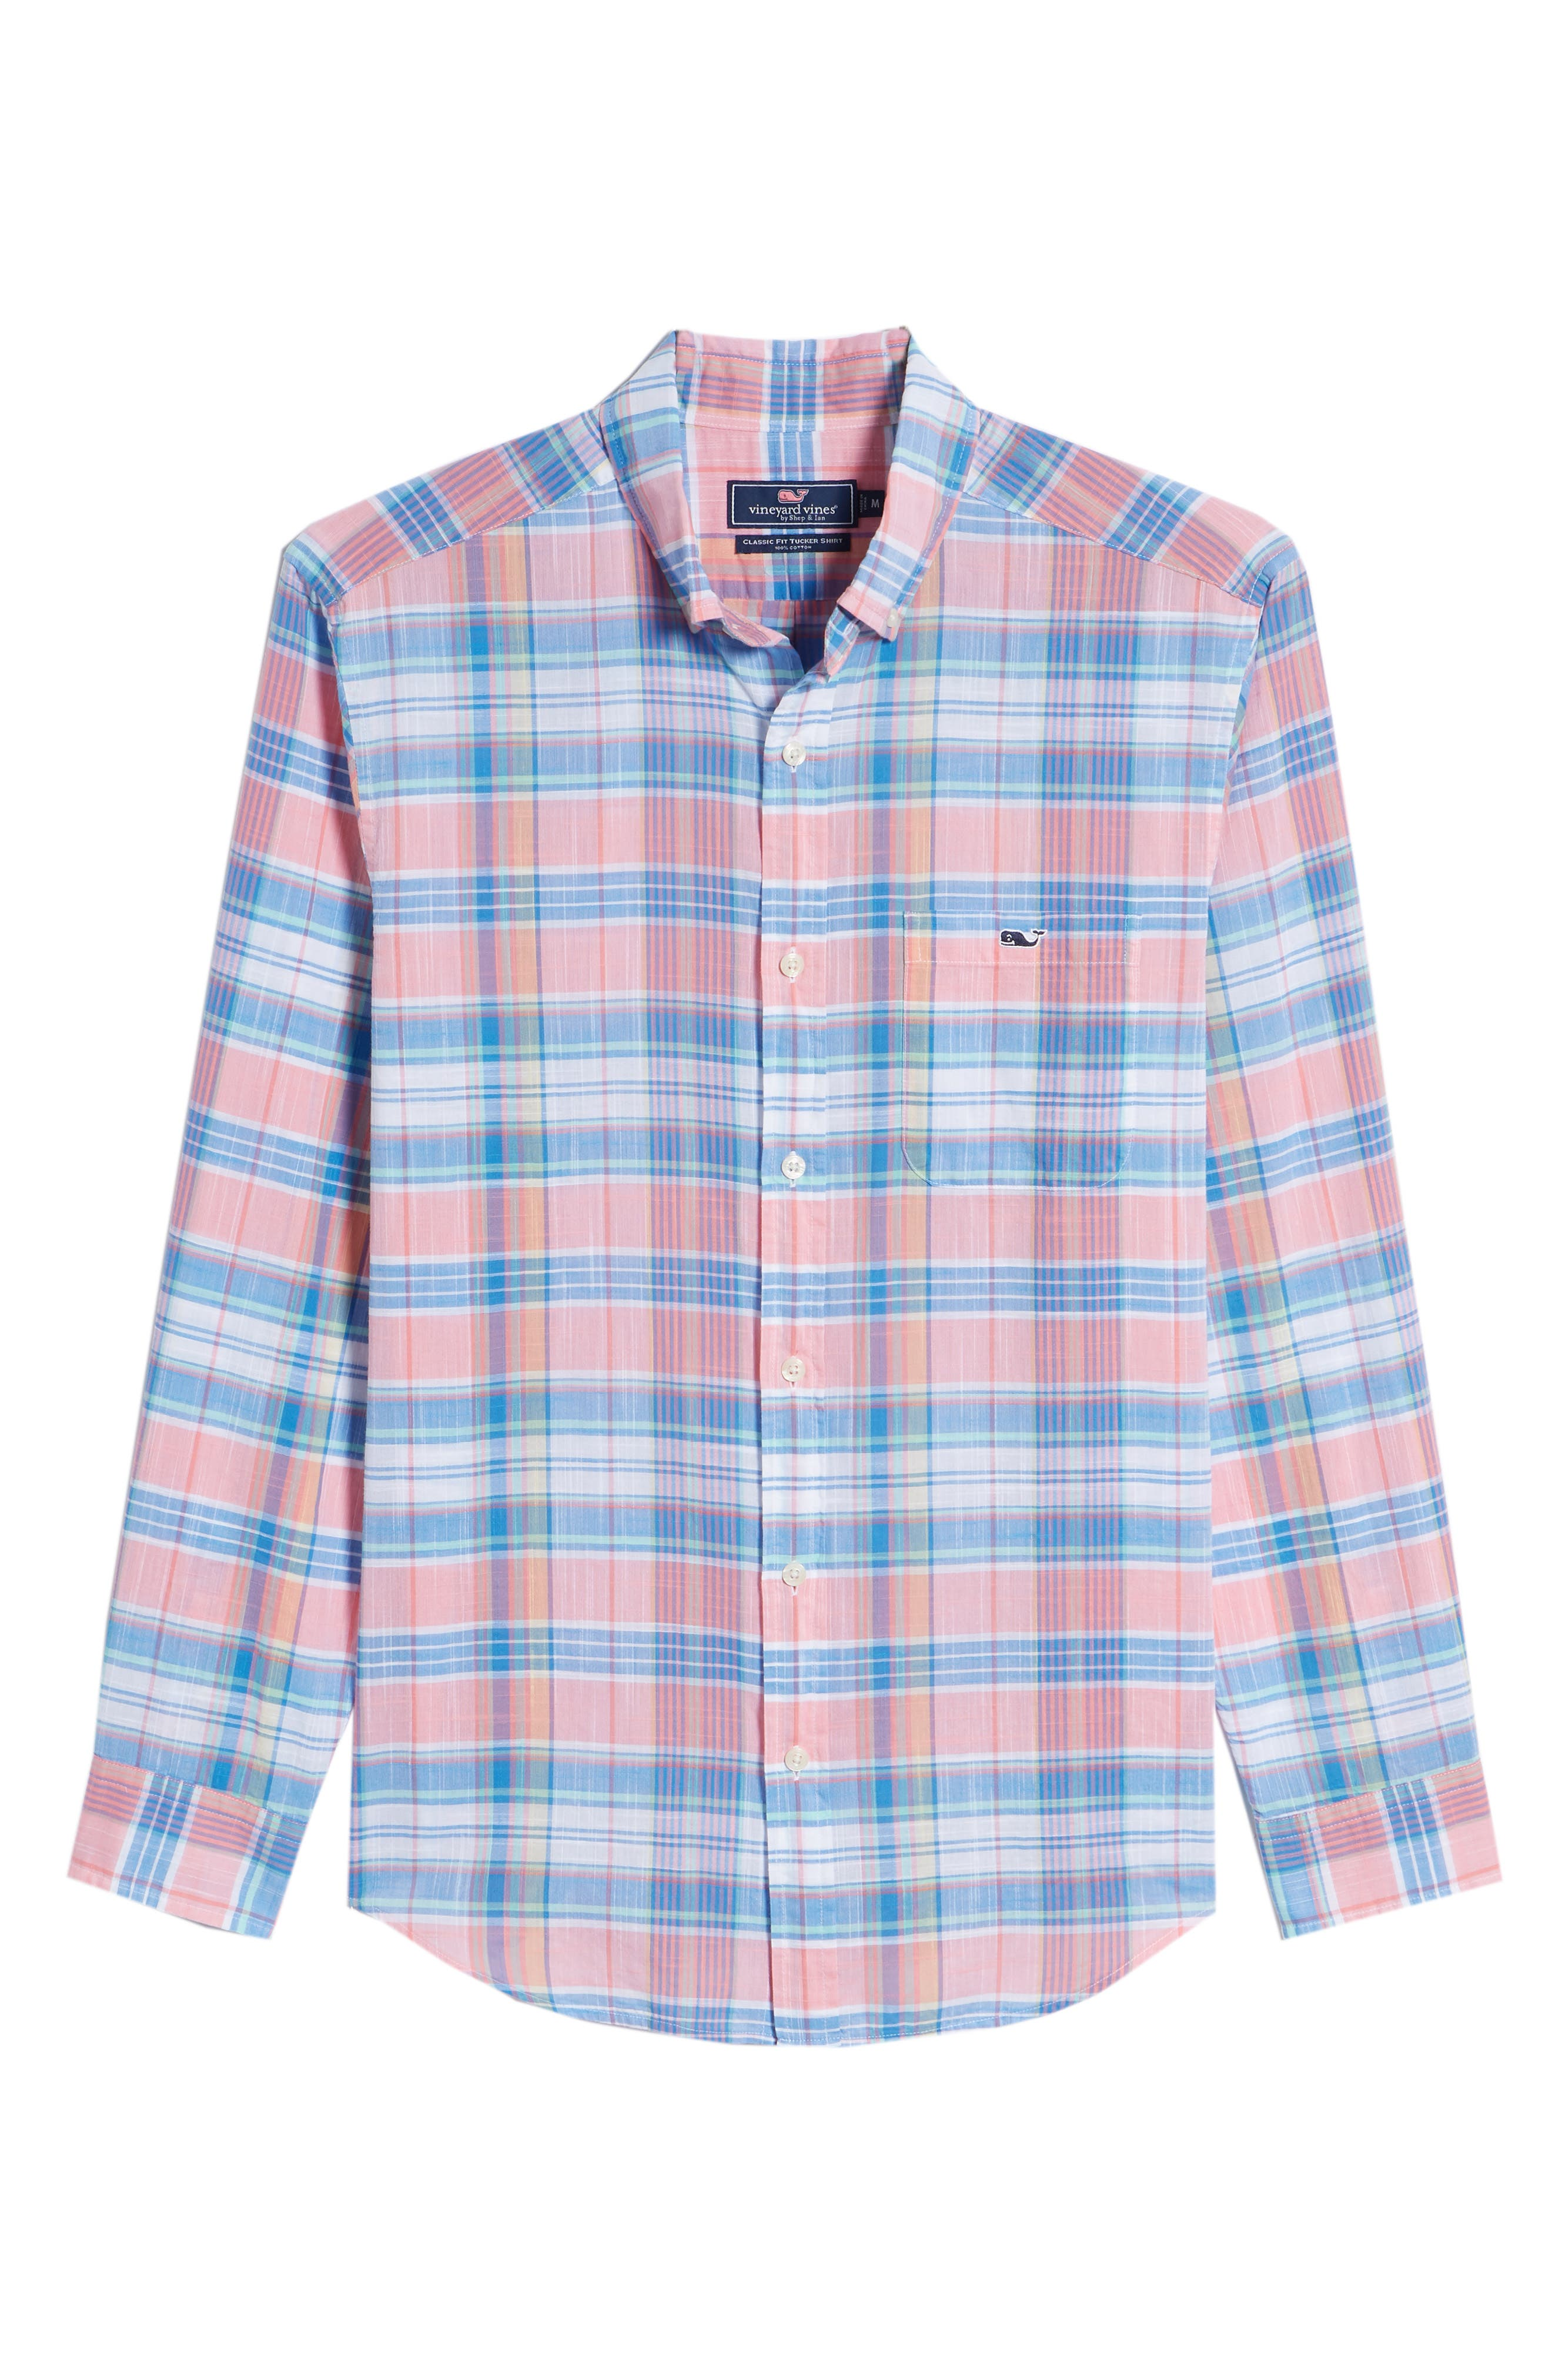 Smith Point Tucker Classic Fit Plaid Sport Shirt,                             Alternate thumbnail 6, color,                             Washed Neon Pink